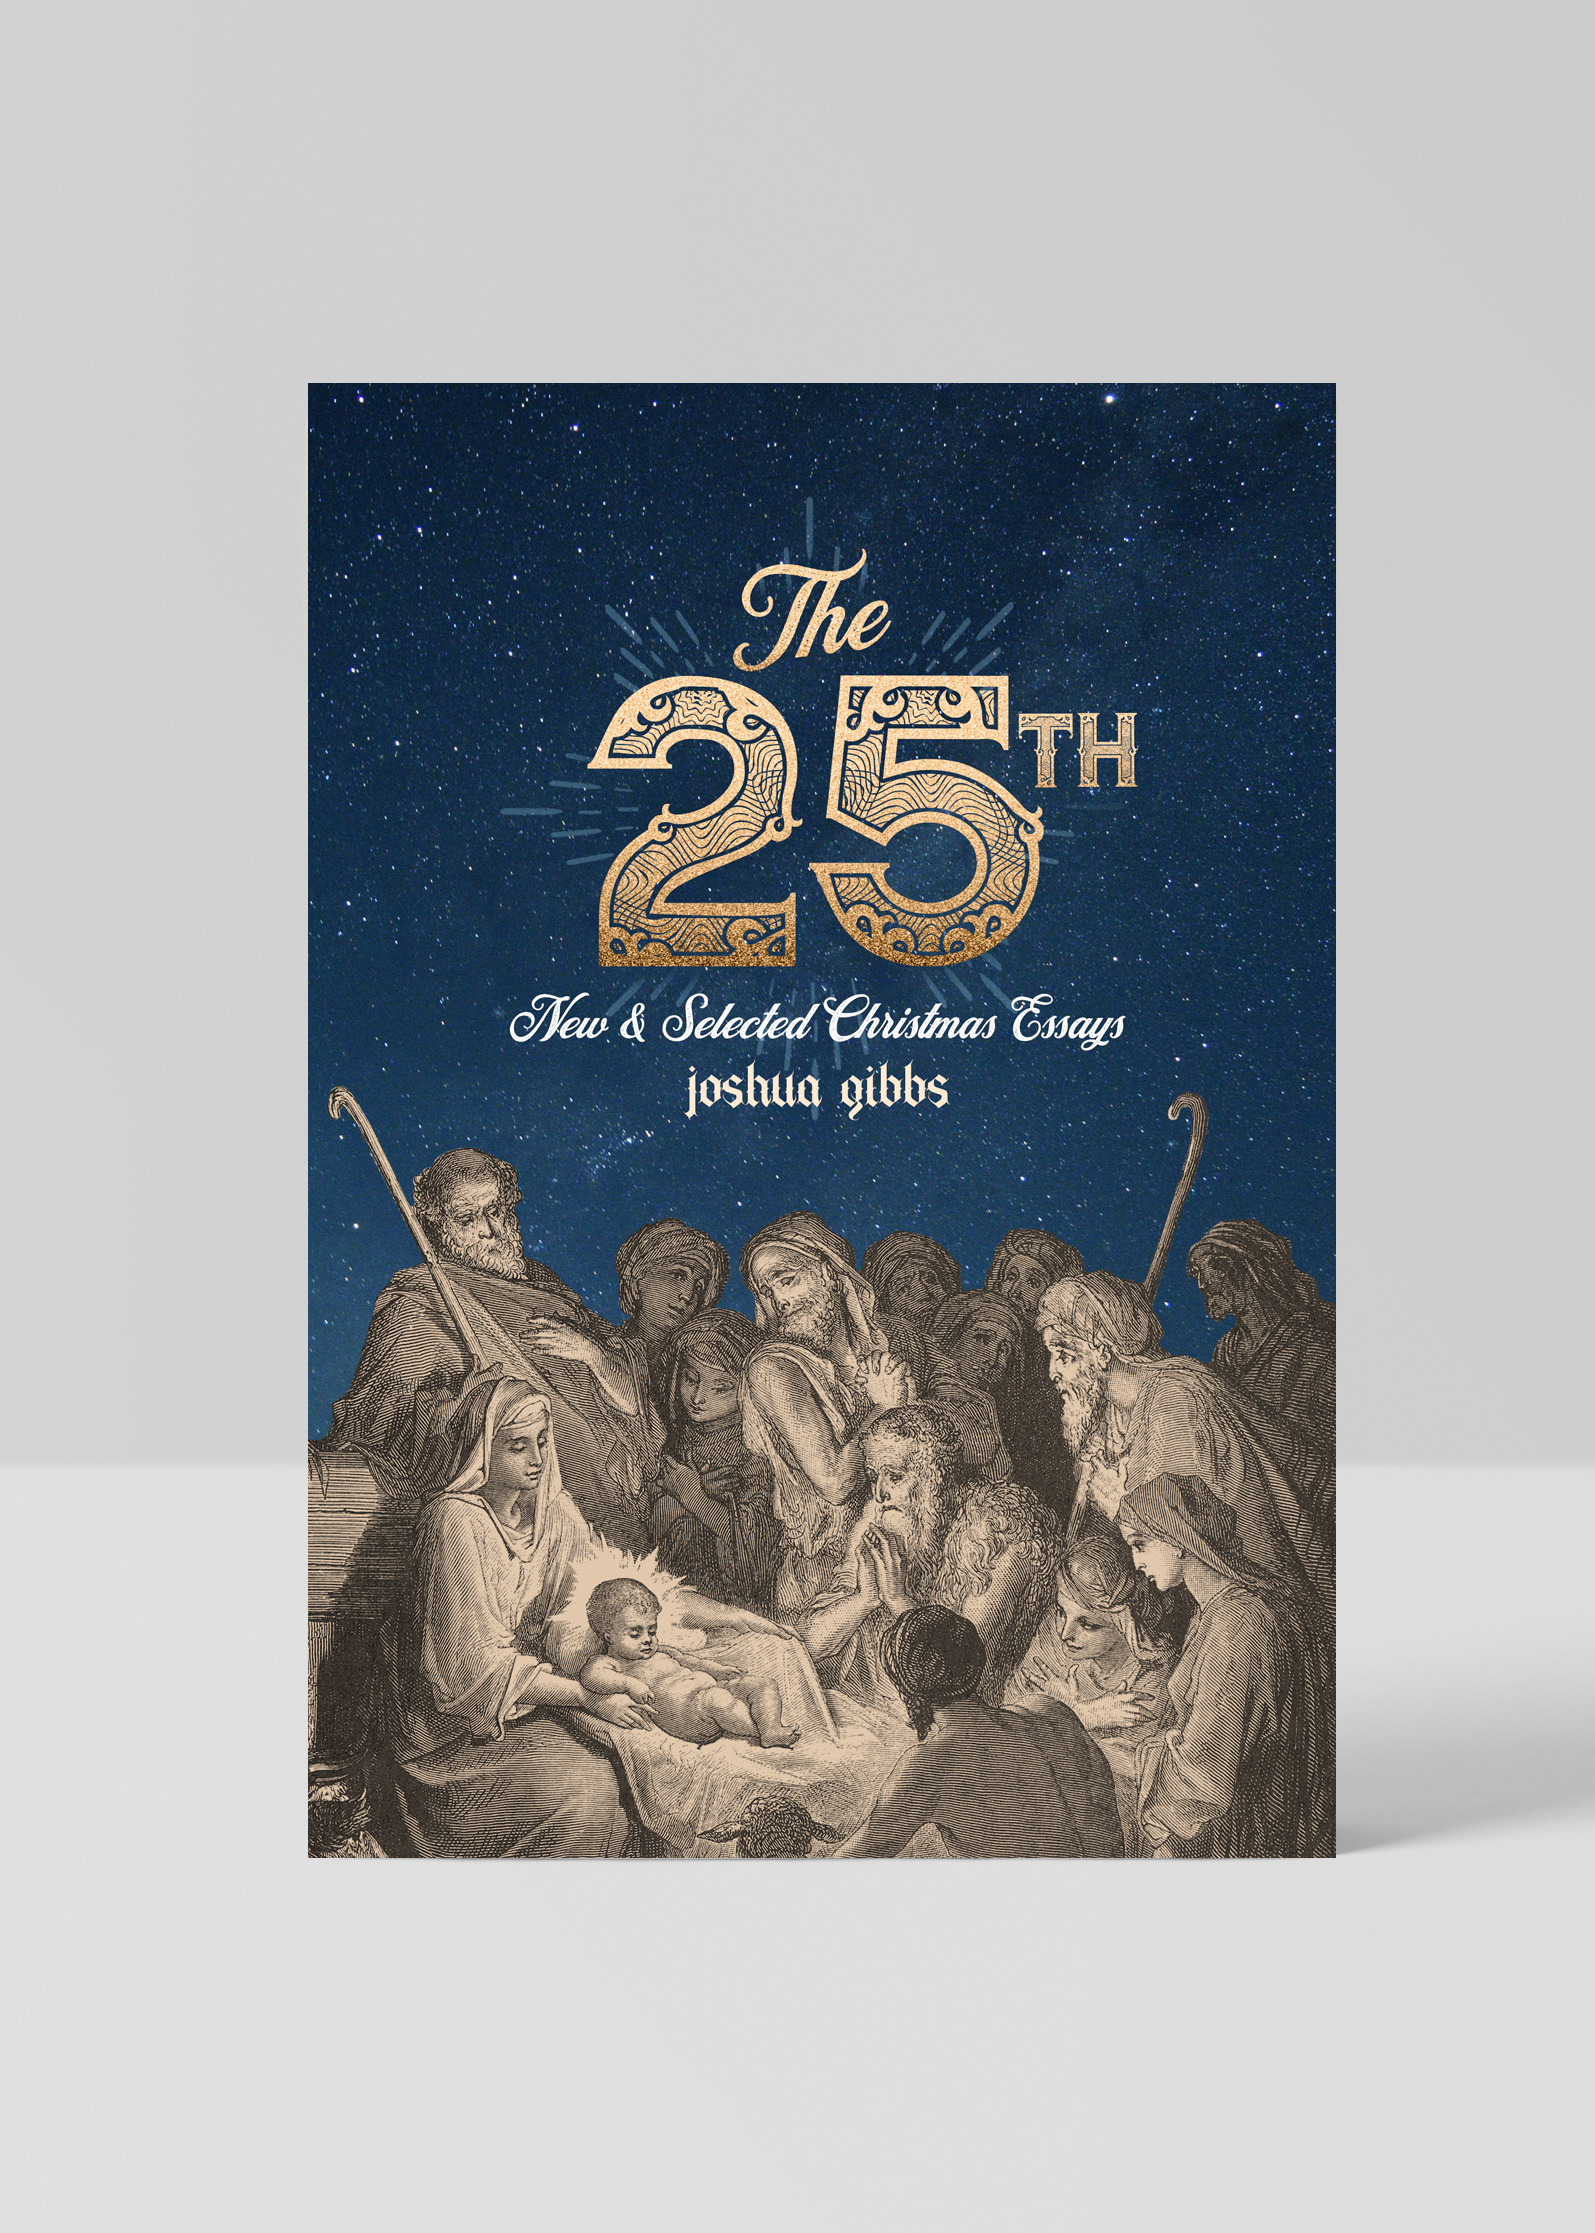 The 25th: New and Selected Christmas Essays